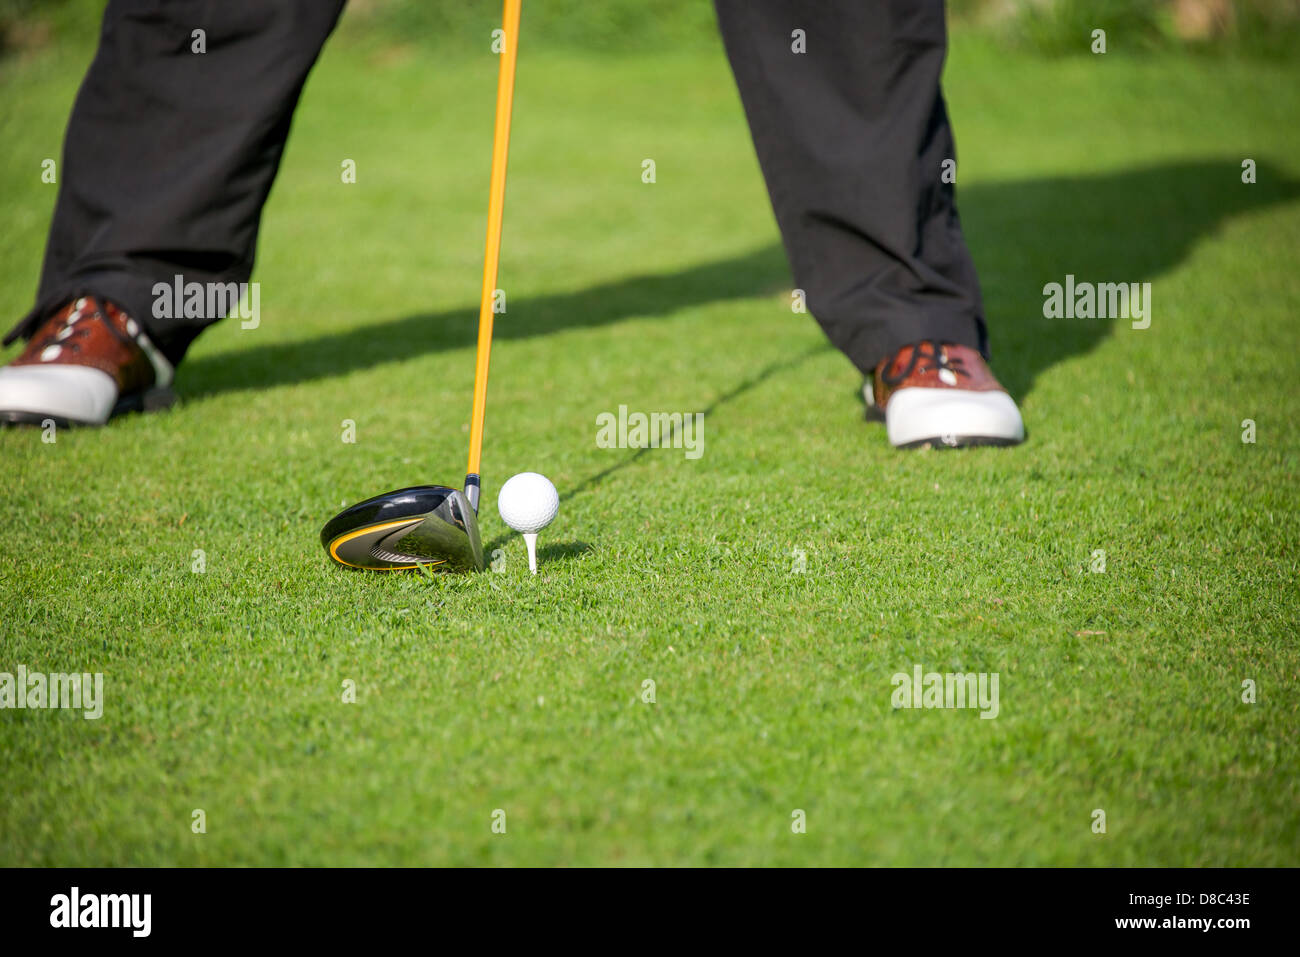 a golfer addresses the ball on the tee with his driver in the tee box - Stock Image